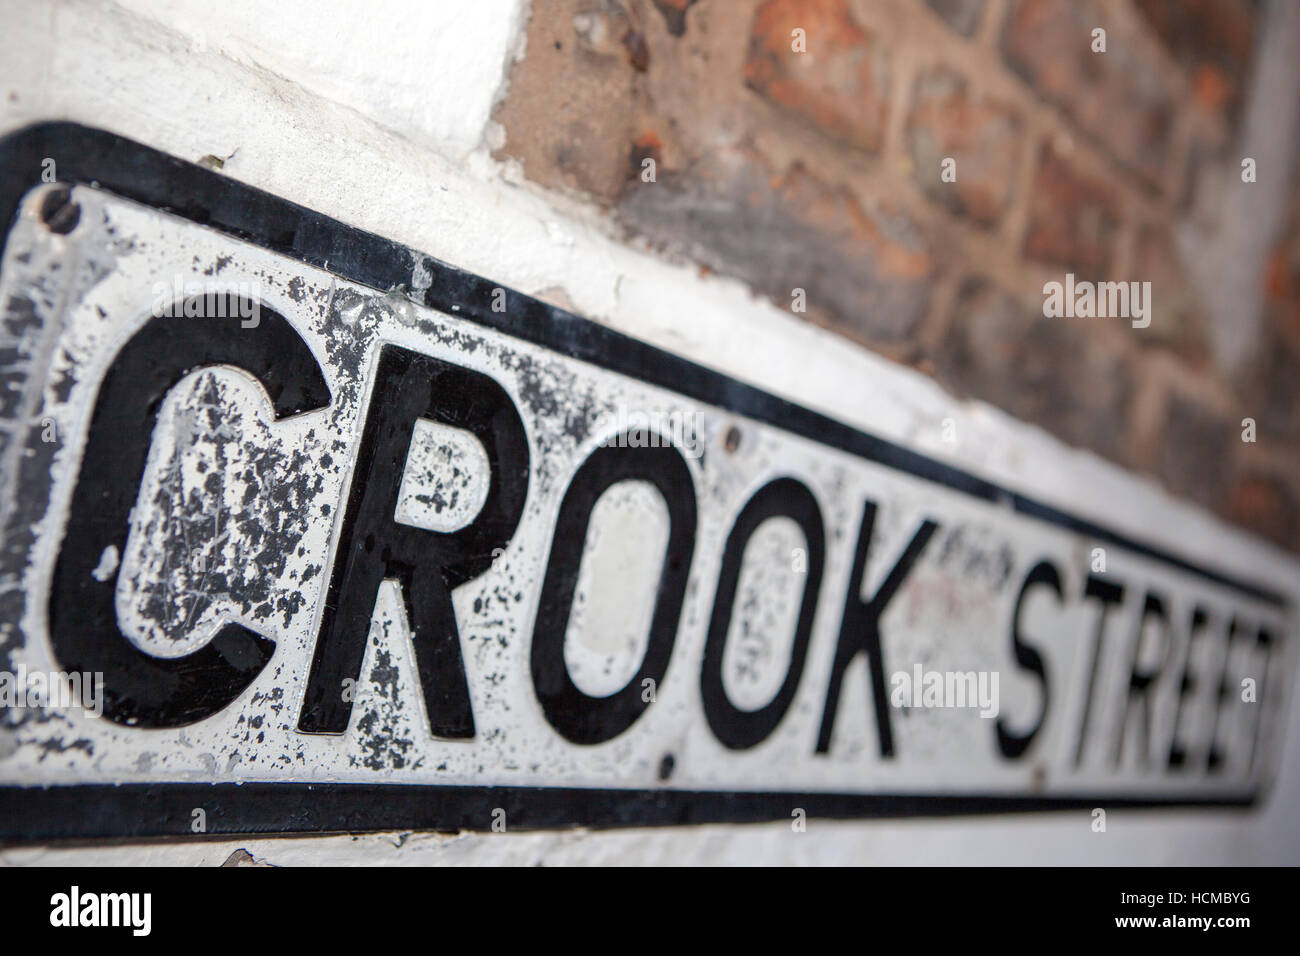 Crook street, signs, in the retail sector of the City of Chester, Cheshire, UK - Stock Image